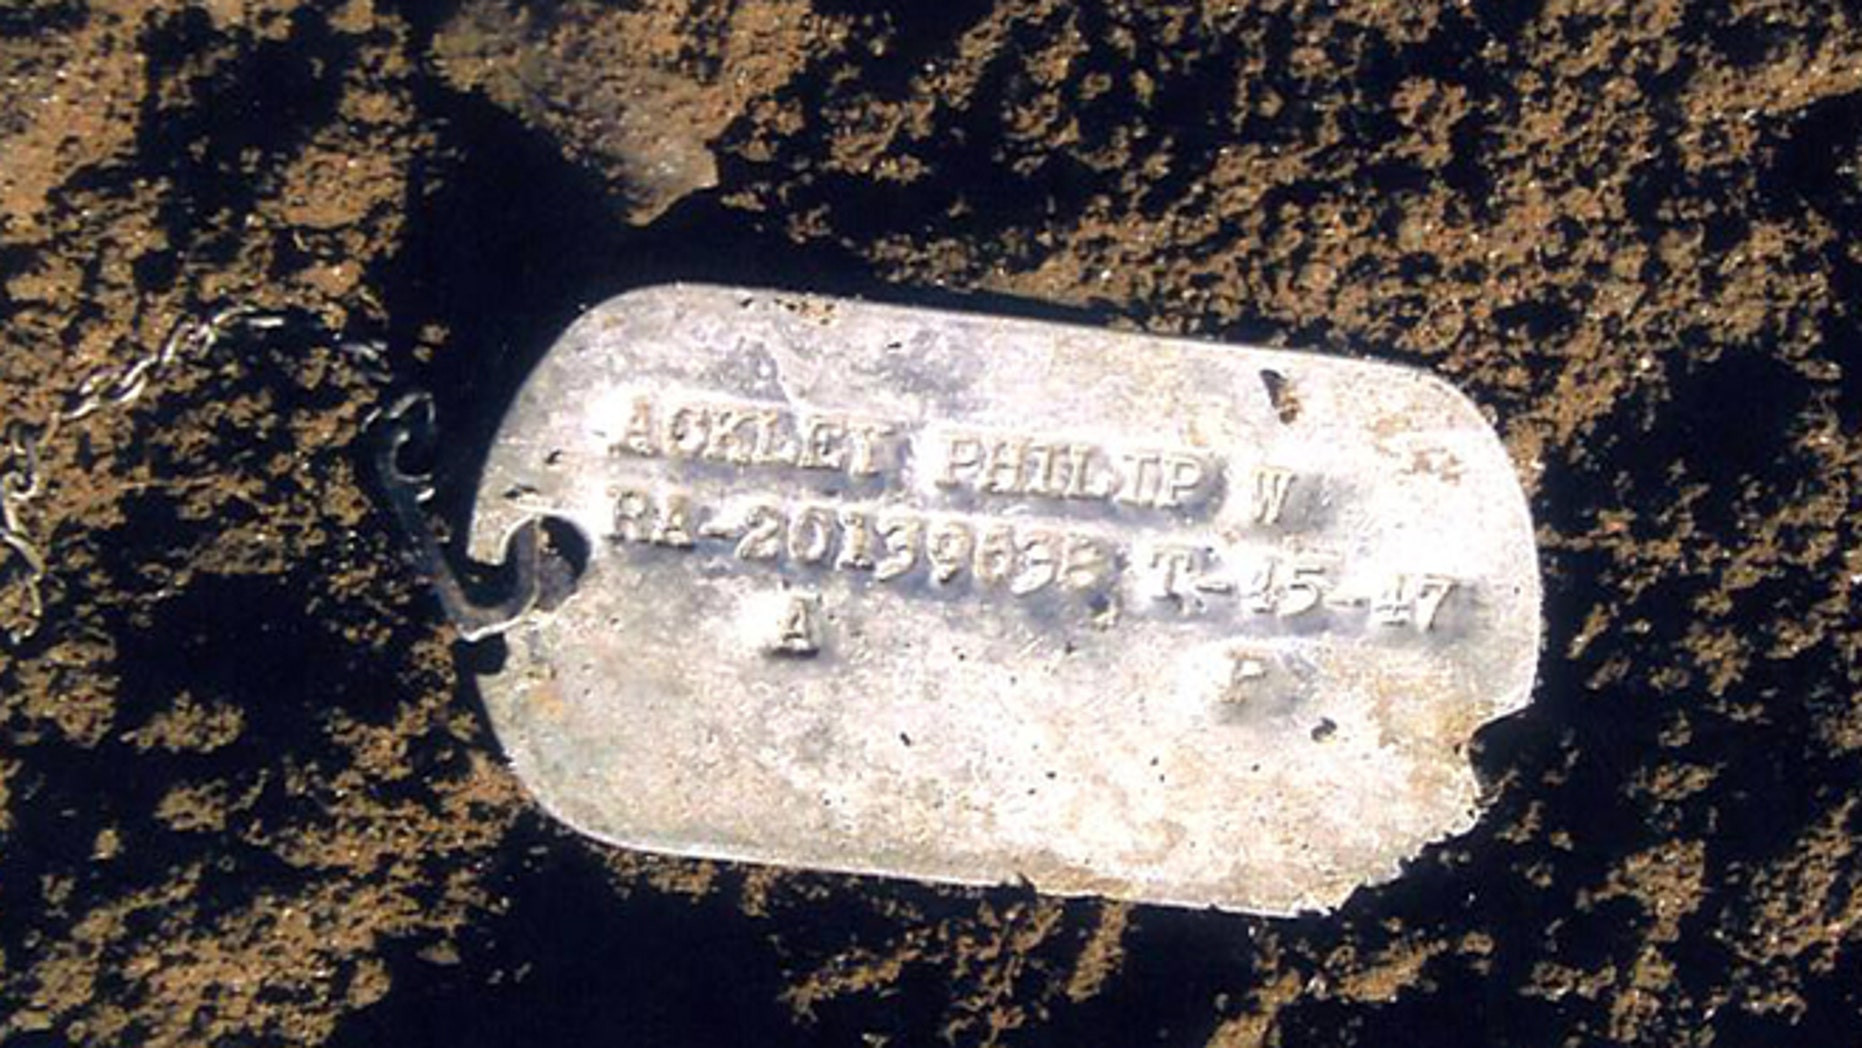 This undated file photo provided on July 14, 2010 by the U.S. Defense Dept. shows Pfc. Philip W. Ackley's Korean War dog tag.  (AP/U.S. Defense Dept.)